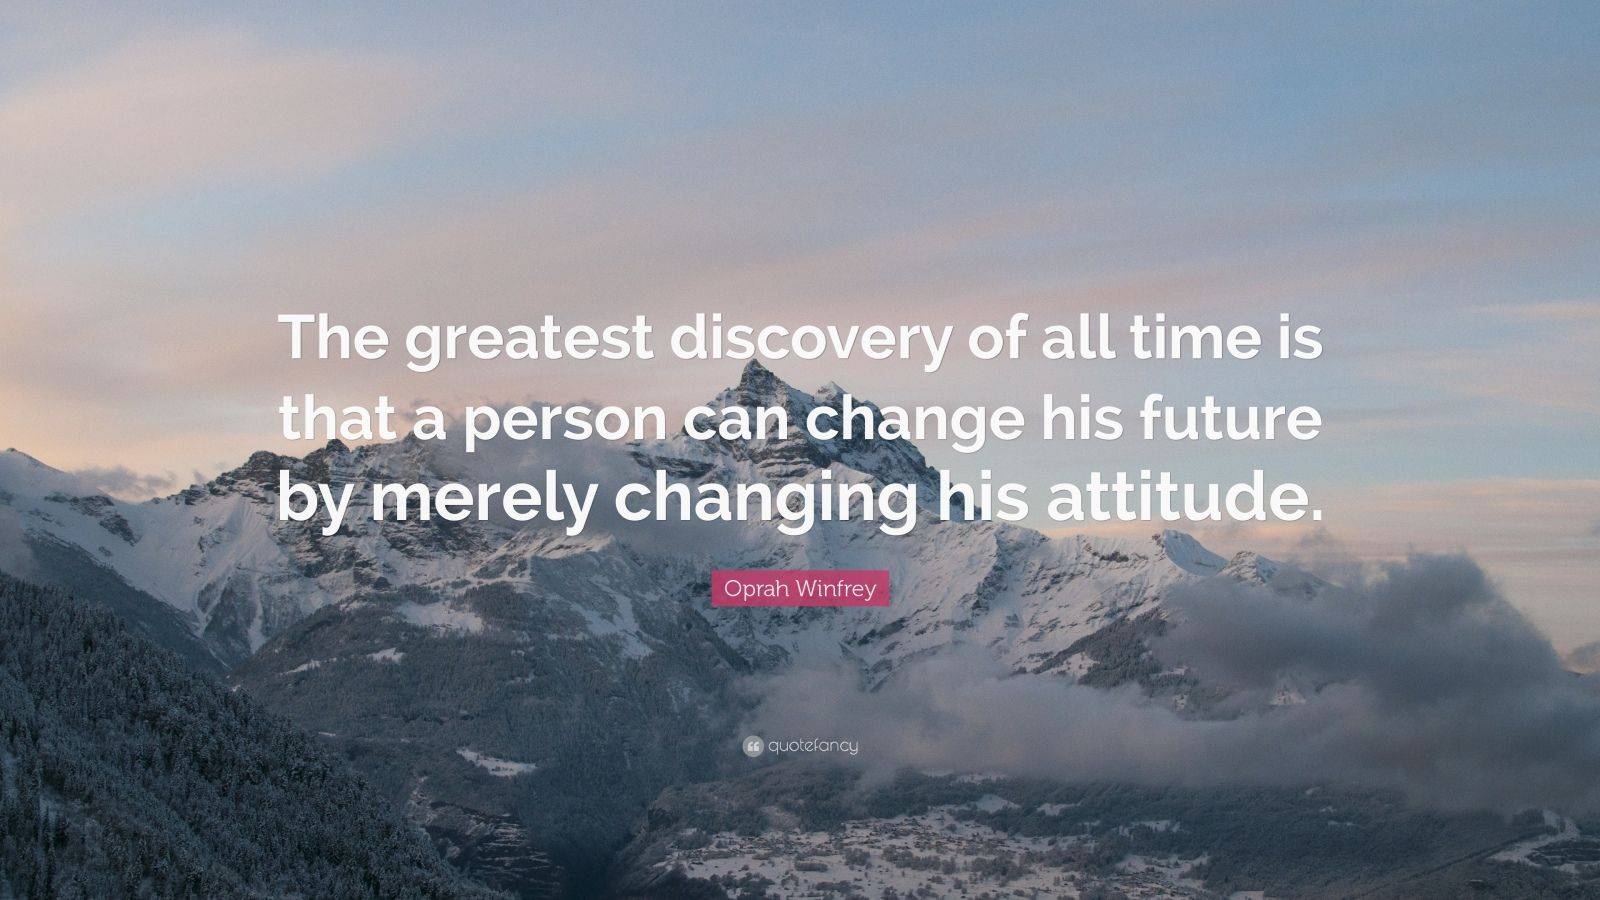 Change Quote Wallpaper Oprah Winfrey Quote The Greatest Discovery Of All Time